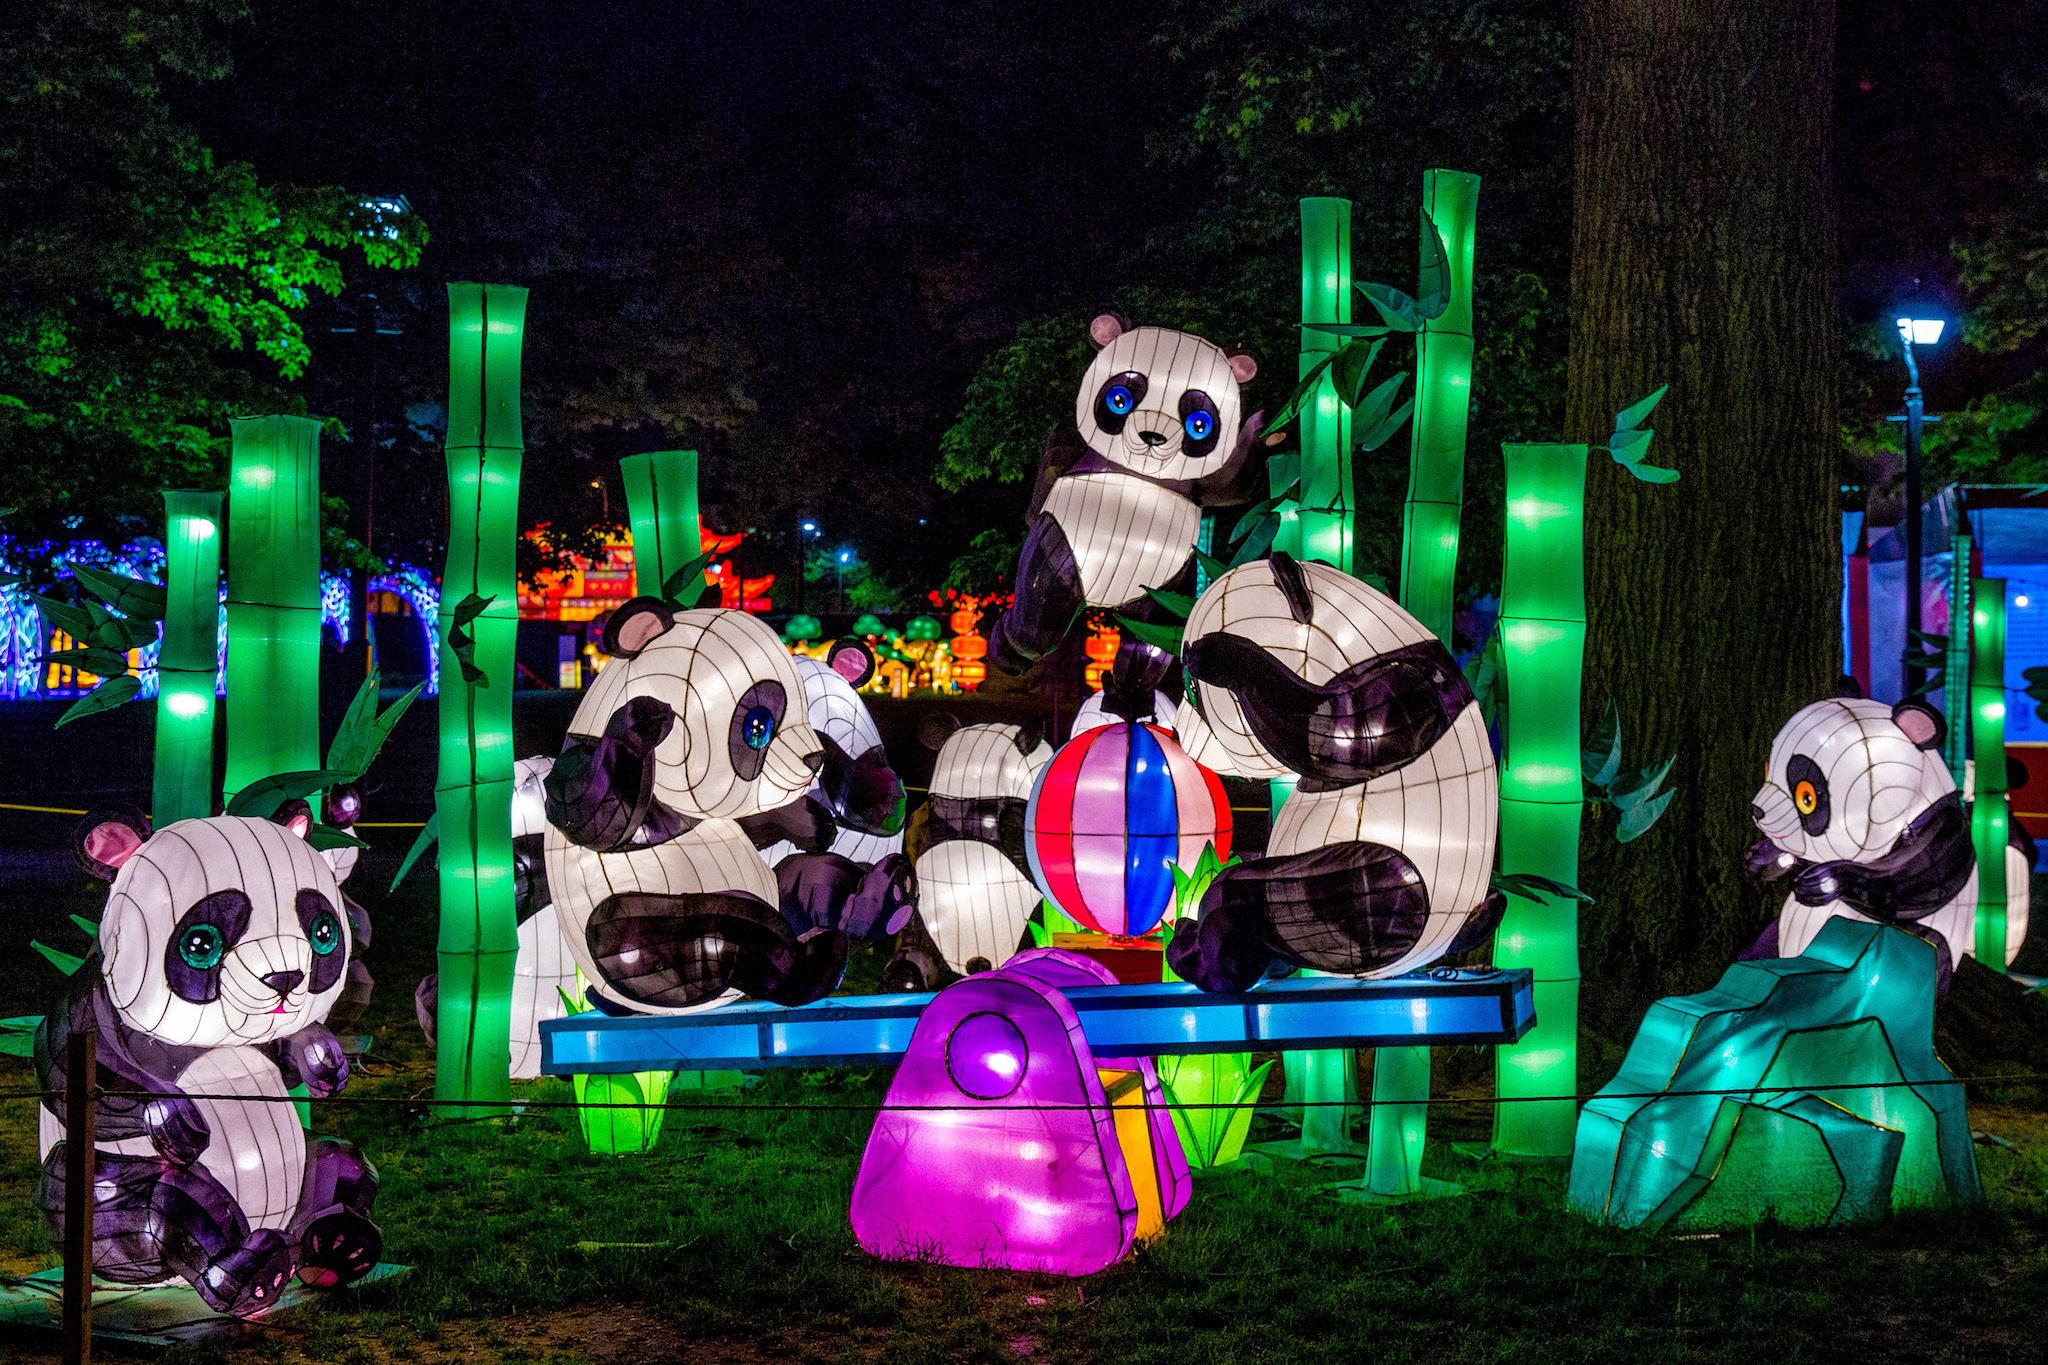 The Chinese Lantern Festival takes place in Philadelphia's Franklin Square